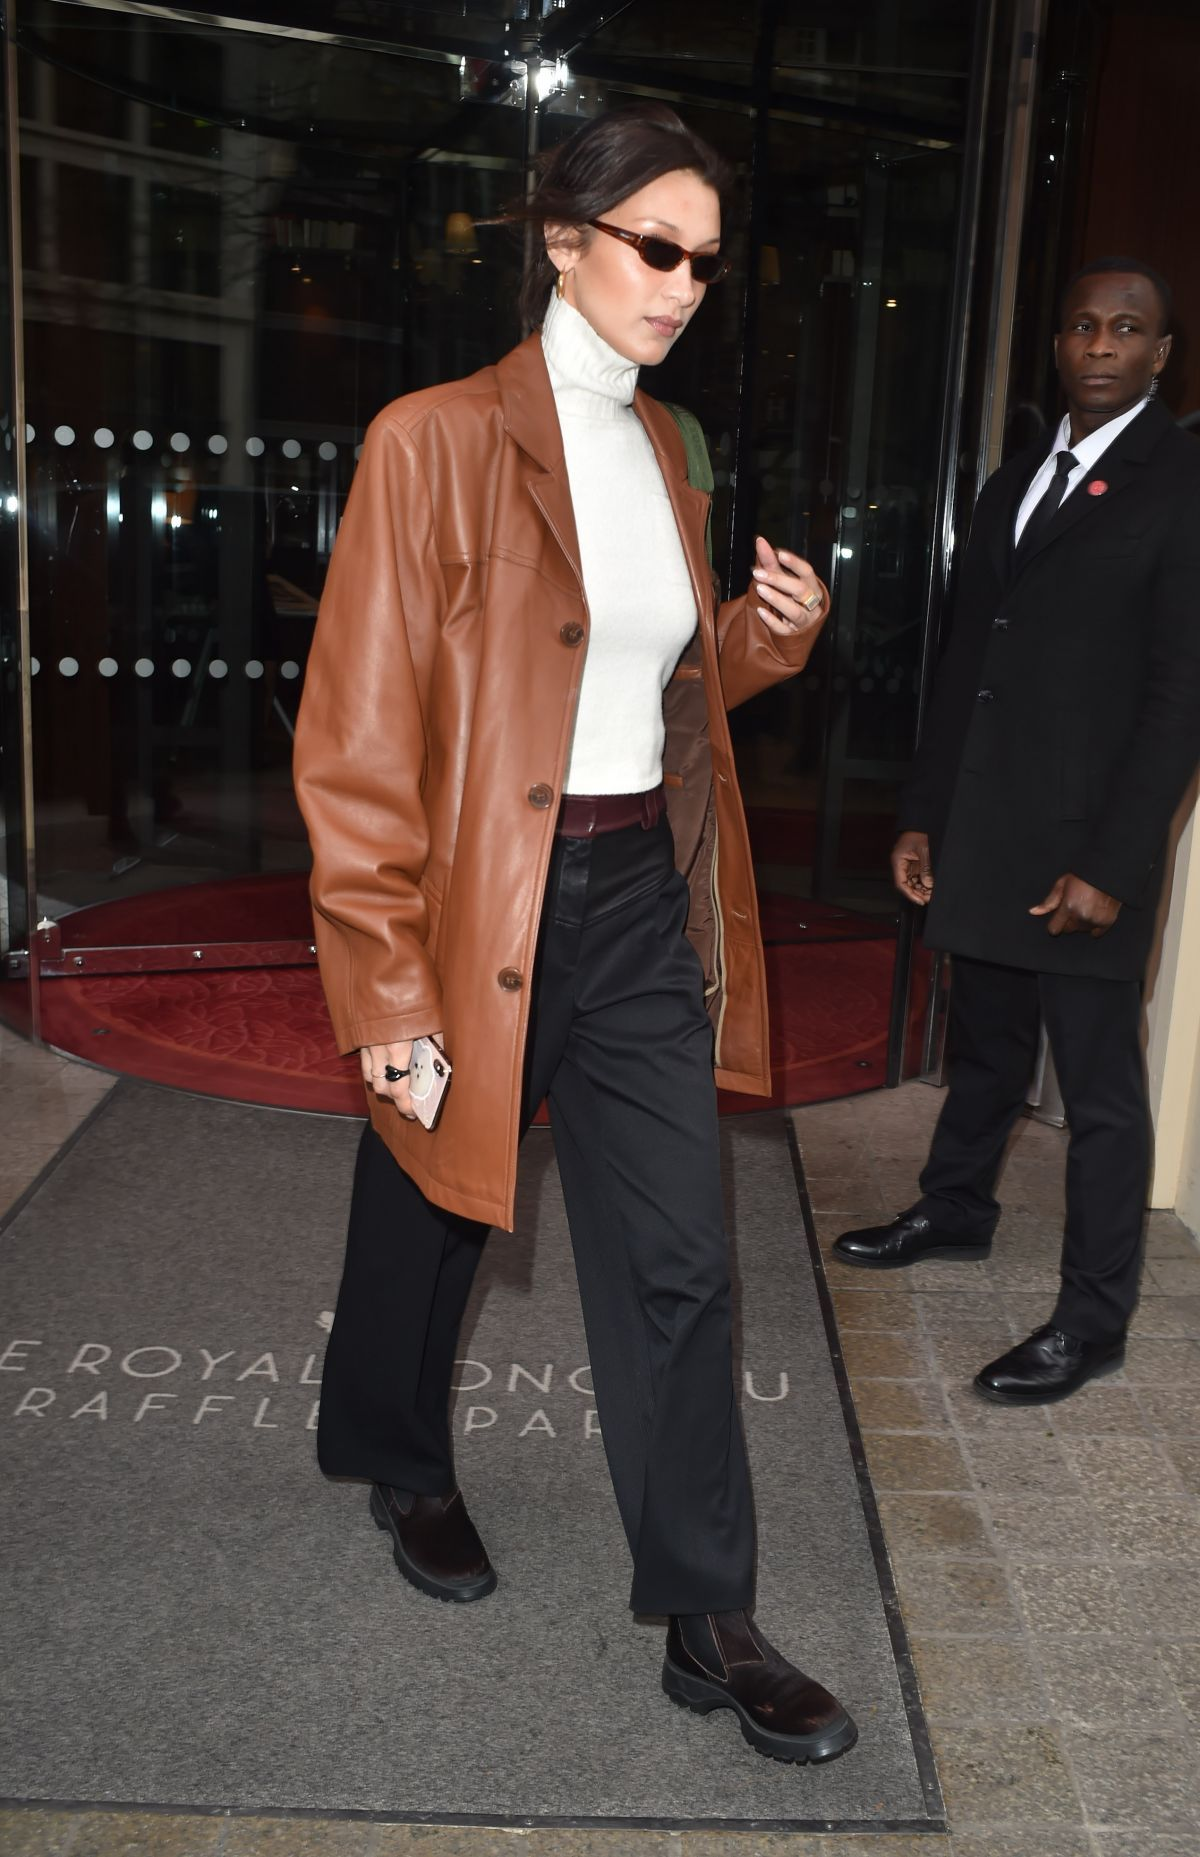 Bella Hadid Out And About In Paris 01 14 2020 In 2021 Leather Jacket Street Style Leather Jacket Style Brown Leather Jacket Outfit [ 1857 x 1200 Pixel ]